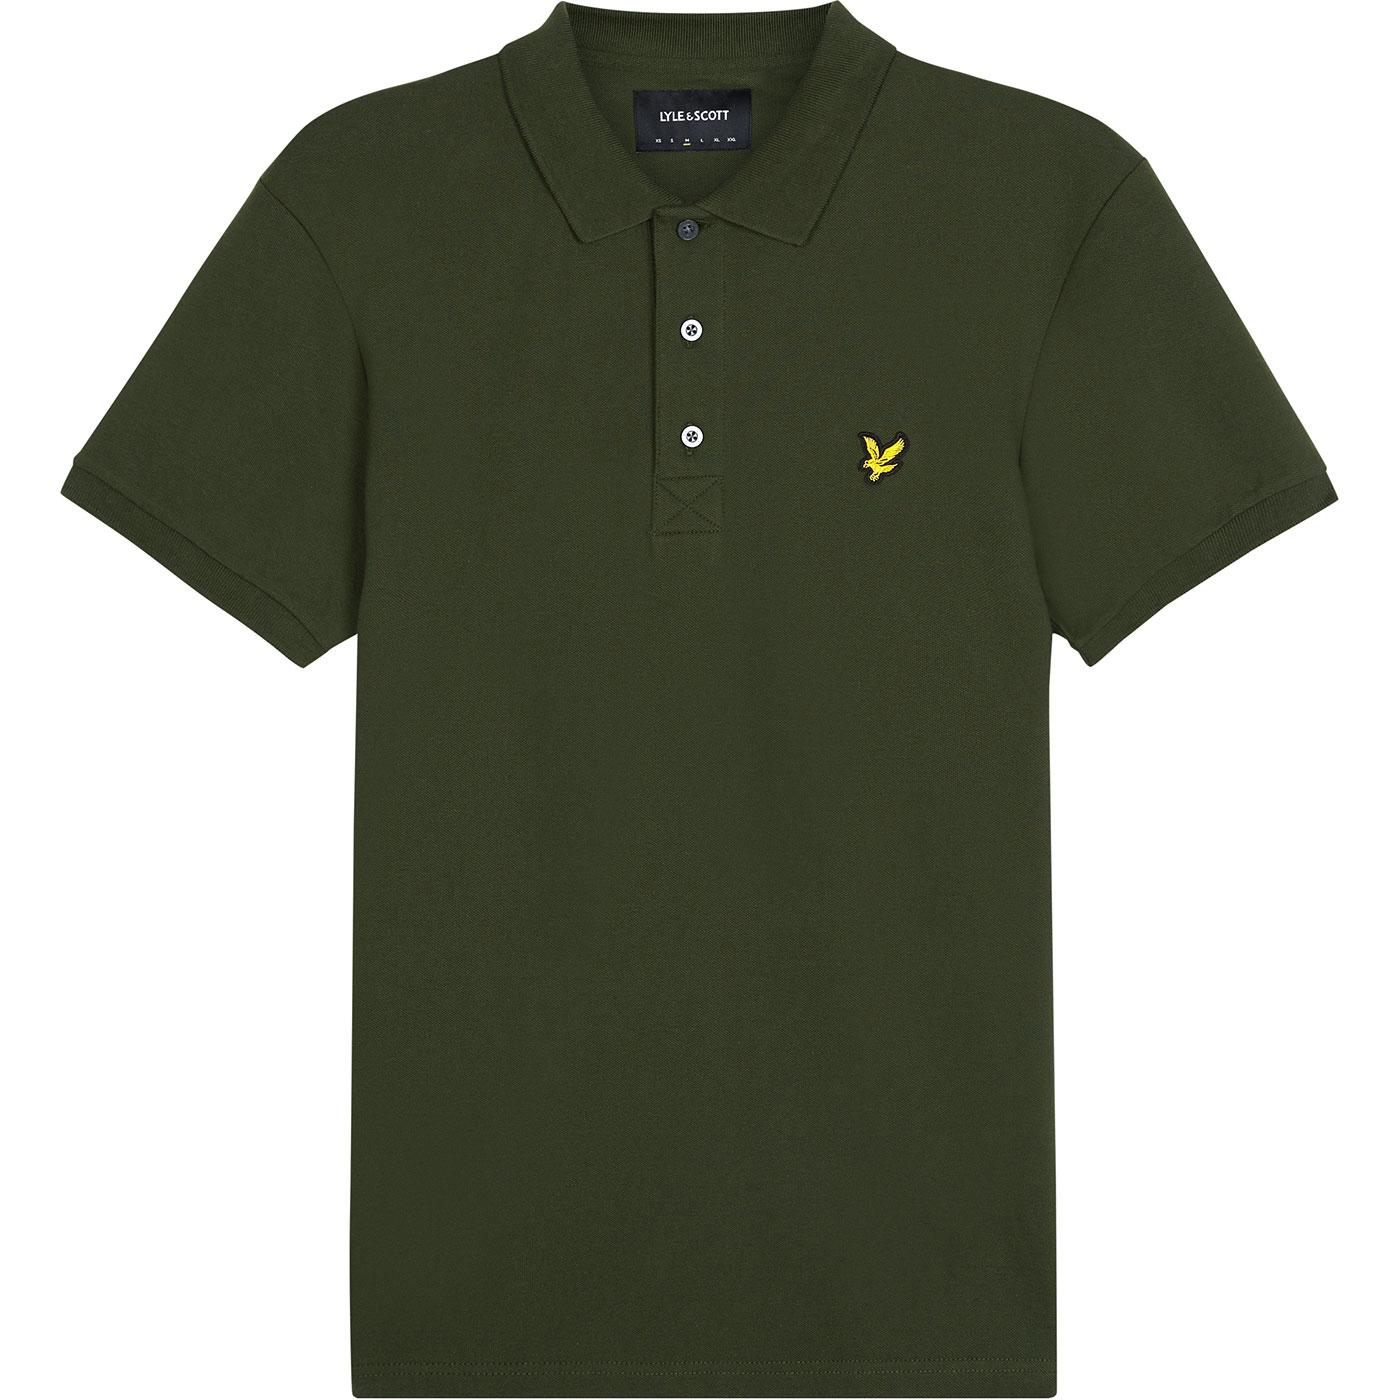 LYLE & SCOTT Men's Mod Stretch Pique Polo - Green